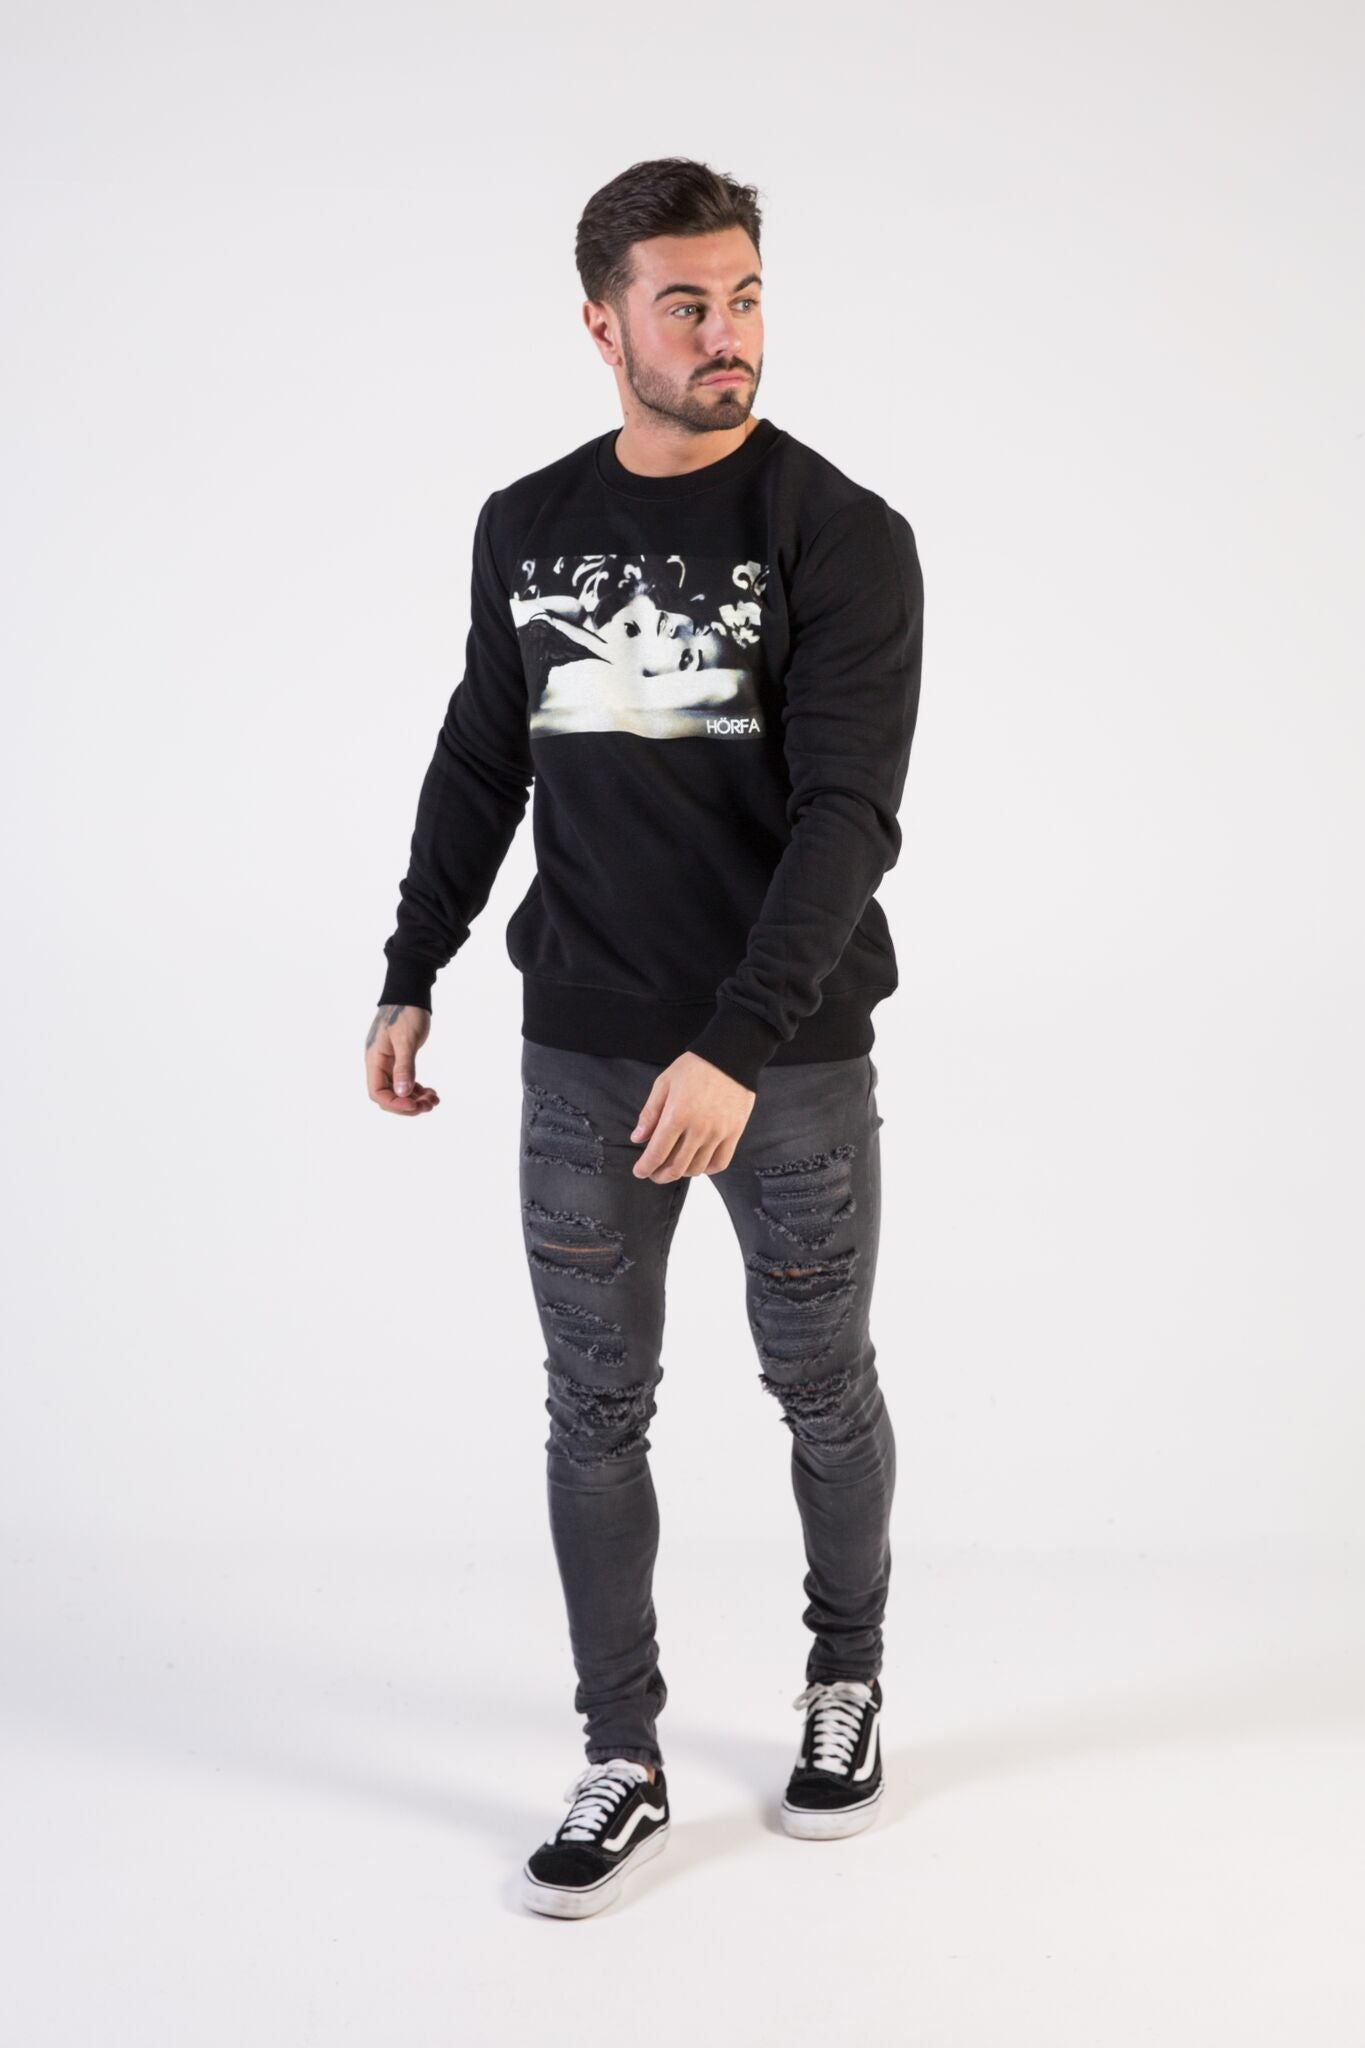 GIRLS Sweatshirt - HÖRFA is a men's global fashion brand that provides products such as Fashionable Watches, Wallets, Sunglasses, Belts, Beard and Male Grooming Products